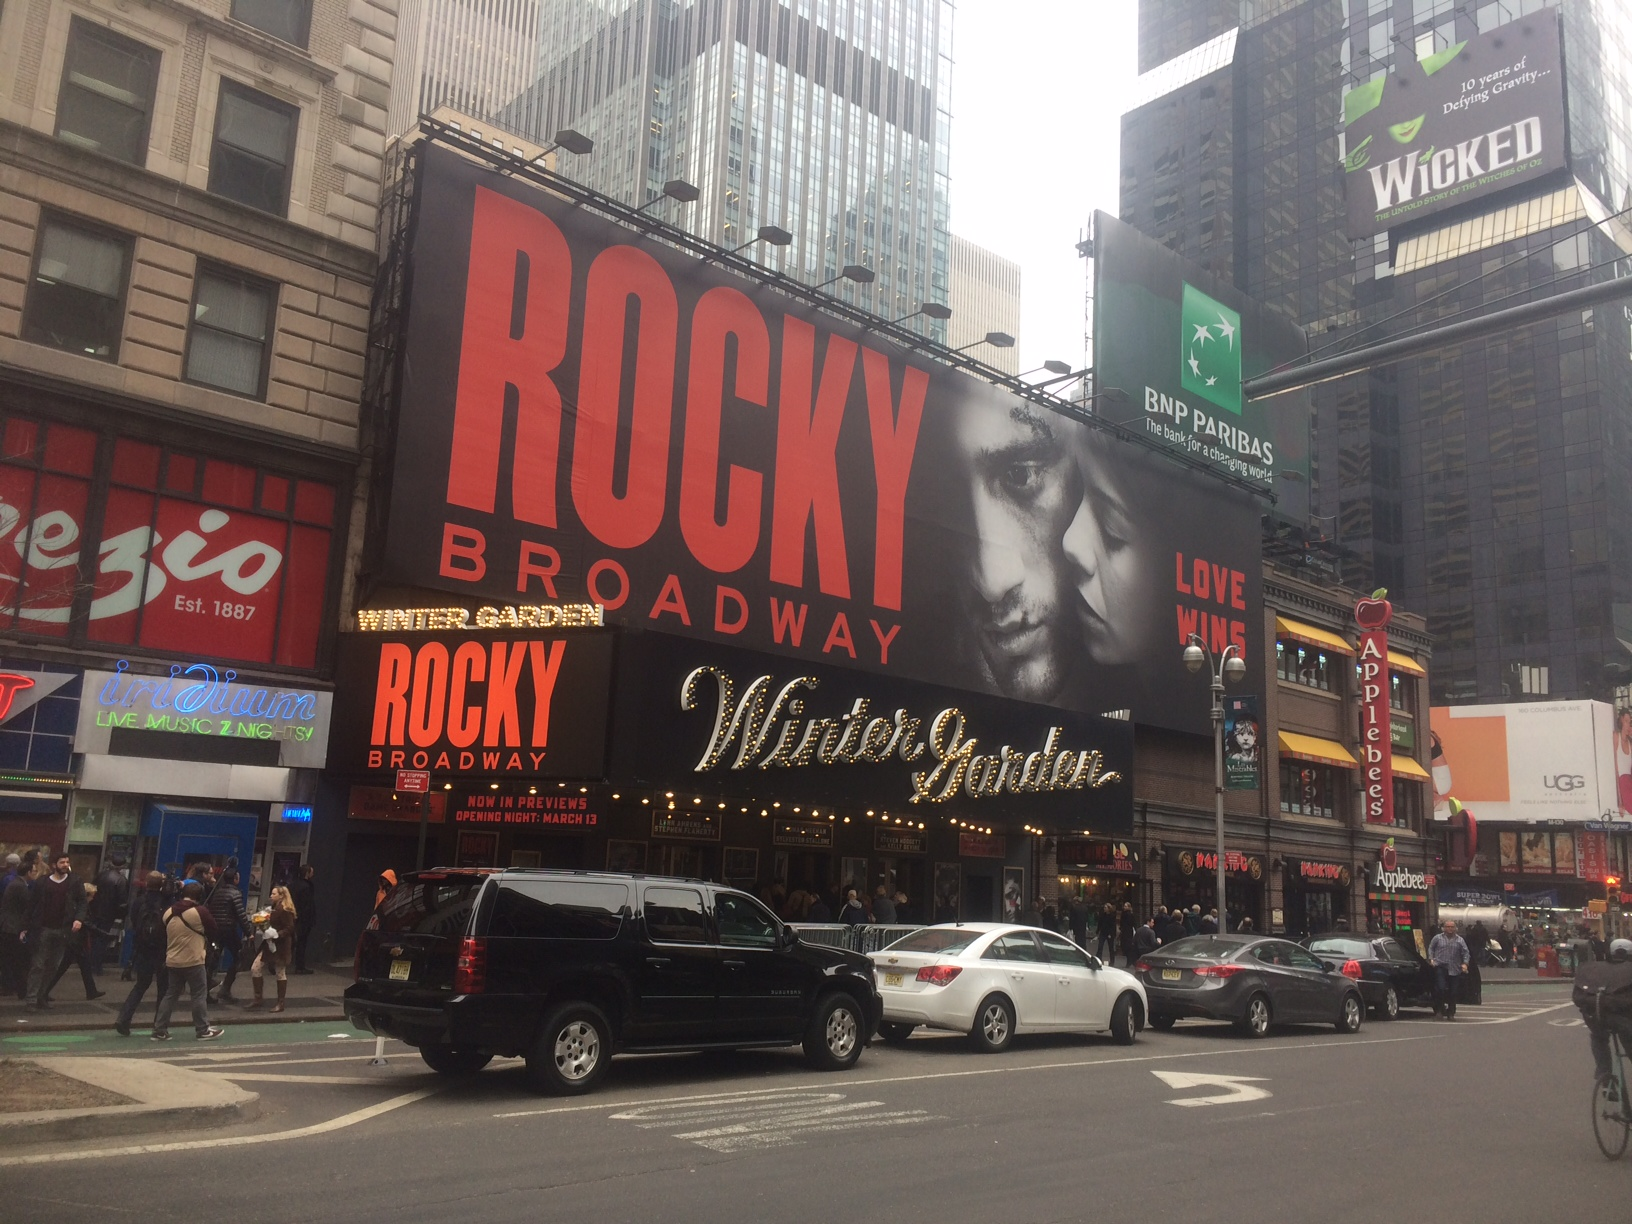 The Rocky Broadway Reviews Are In